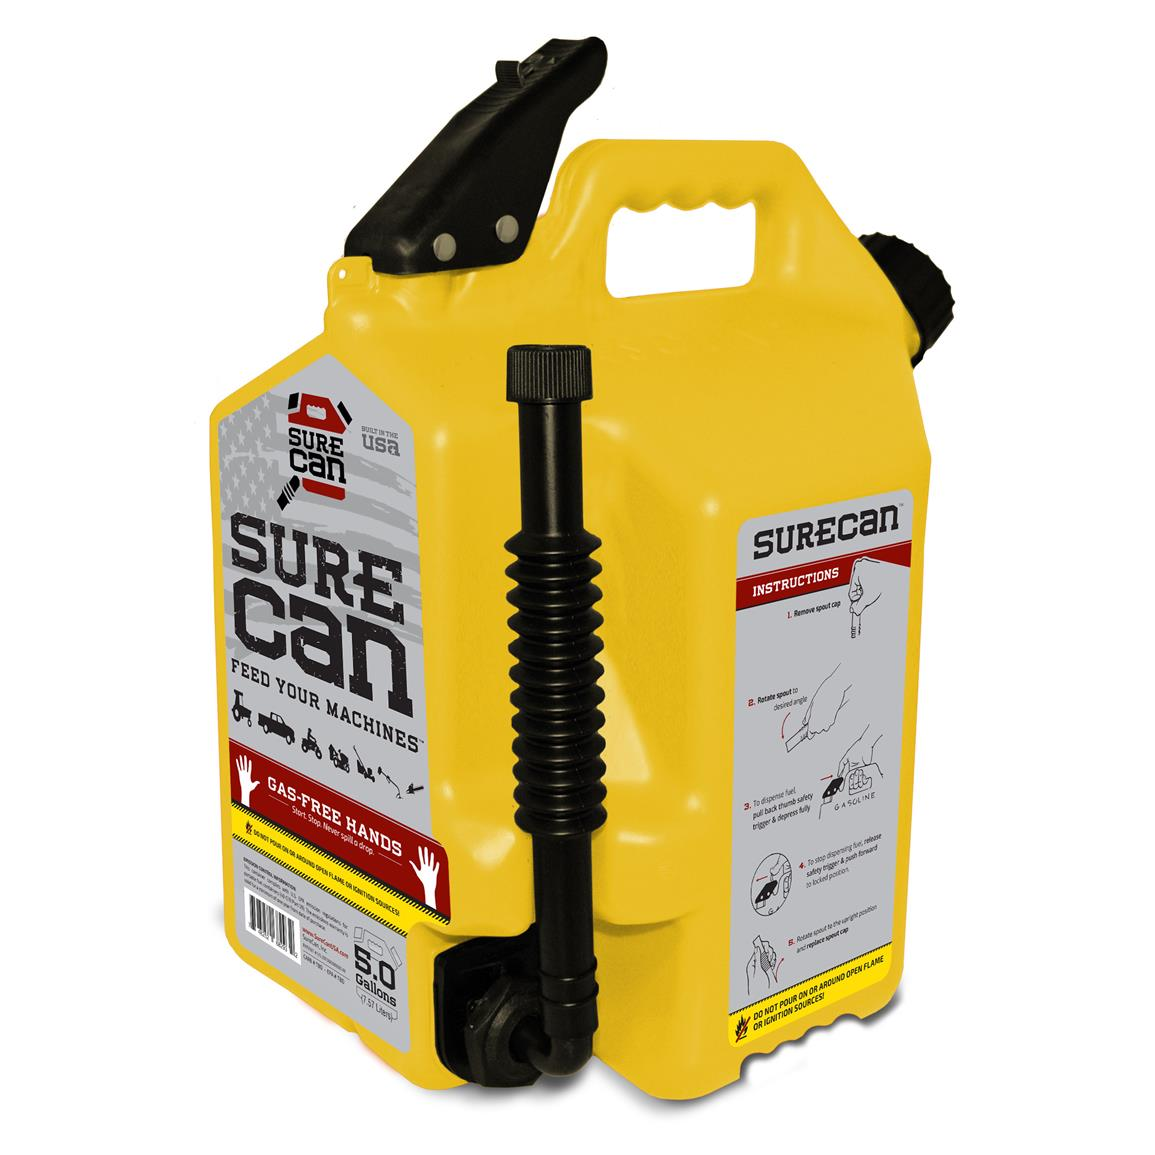 Surecan 5 Gallon Diesel Fuel Can